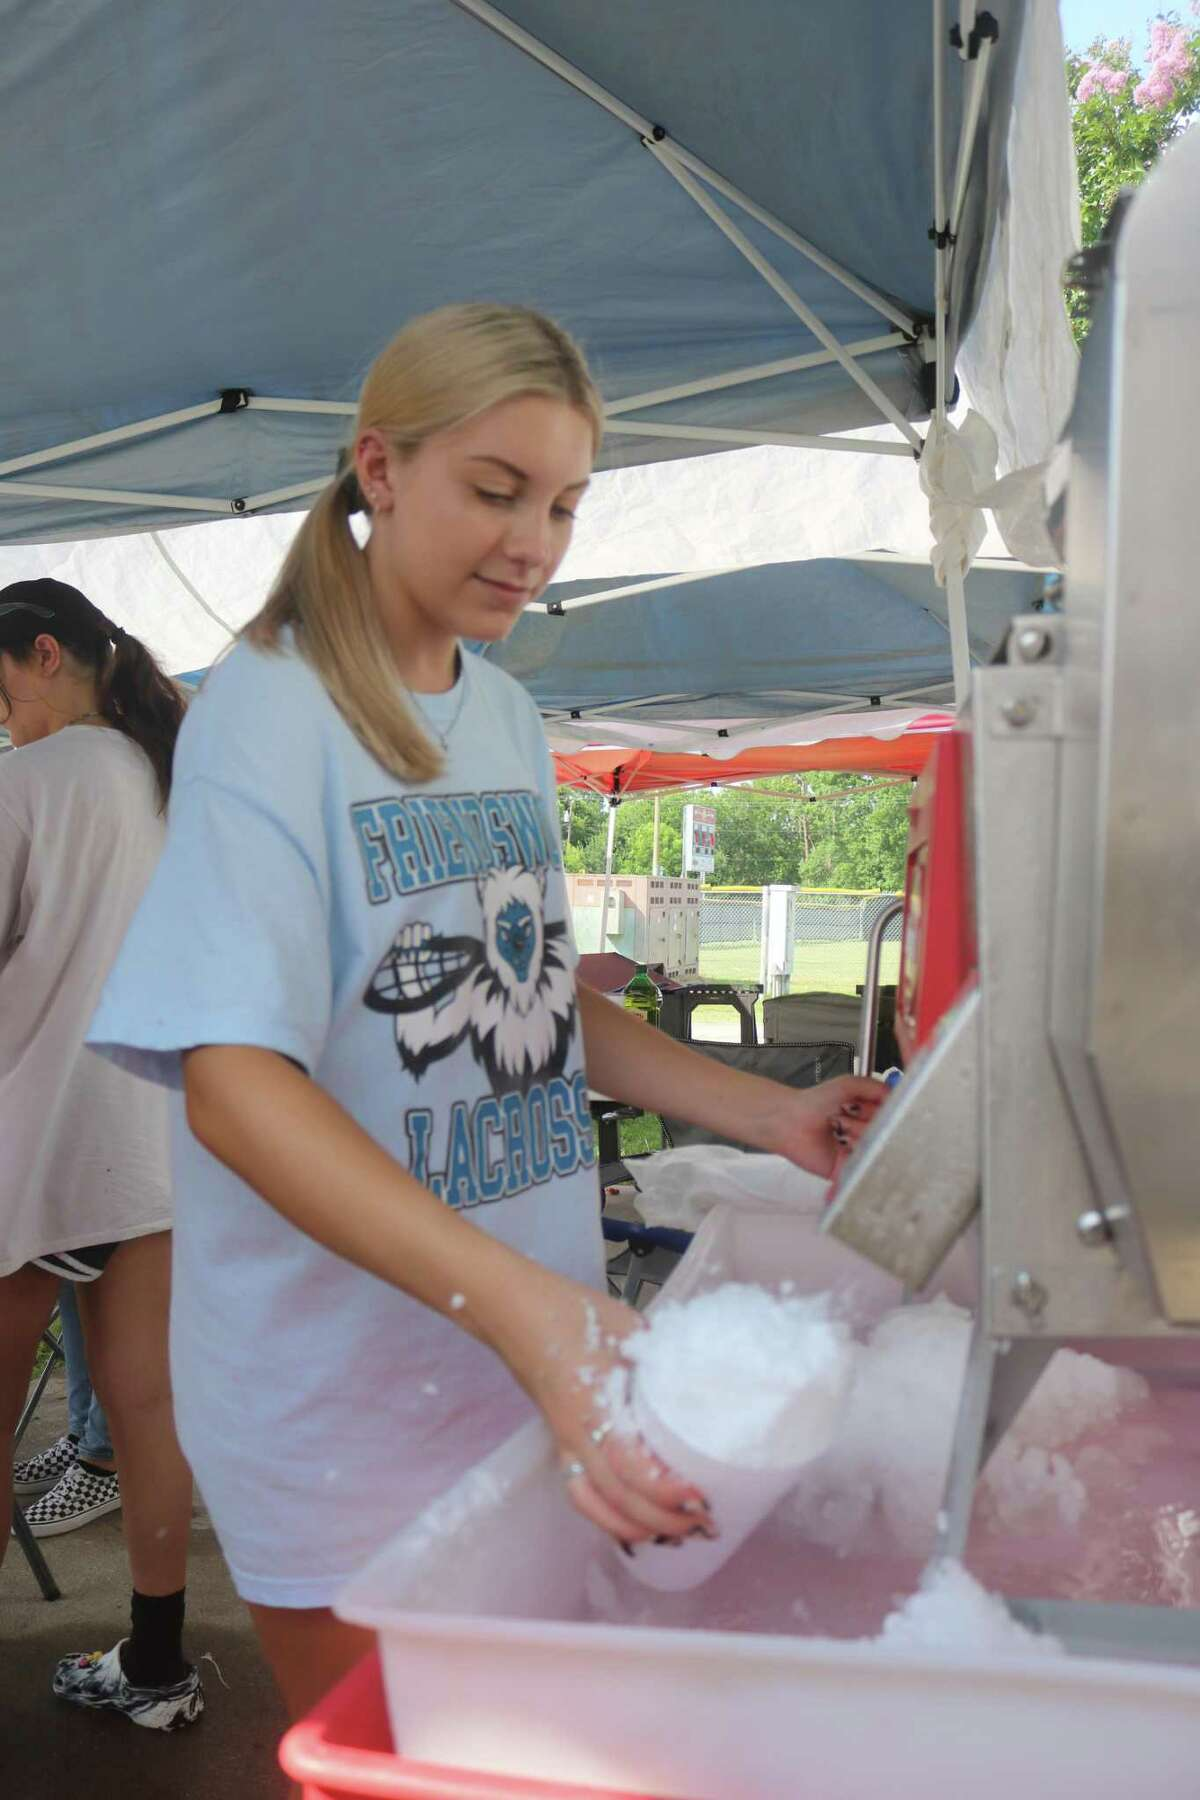 Gracie Varley fills a cup of crushed ice for a customer during her work as a snow-cone-stand operator. As hot as it was on a recent Saturday, Gracie and her co-workers didn't mind getting ice on their hands.